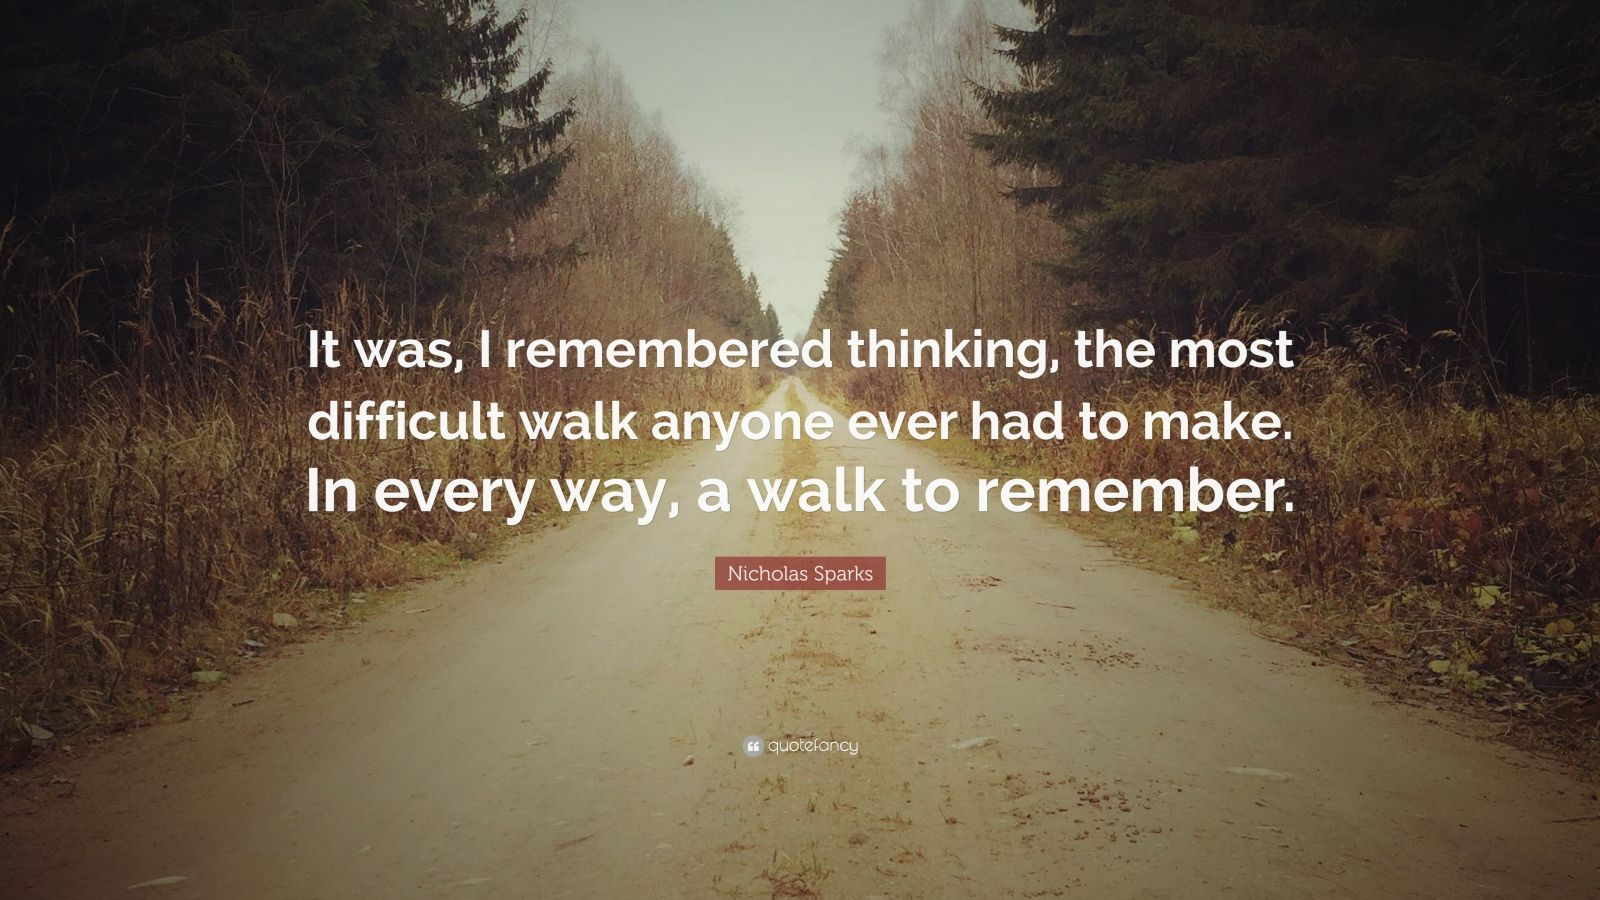 "Nicholas Sparks Quote: ""It was, I remembered thinking, the most difficult walk anyone ever had to make. In every way, a walk to remember."""